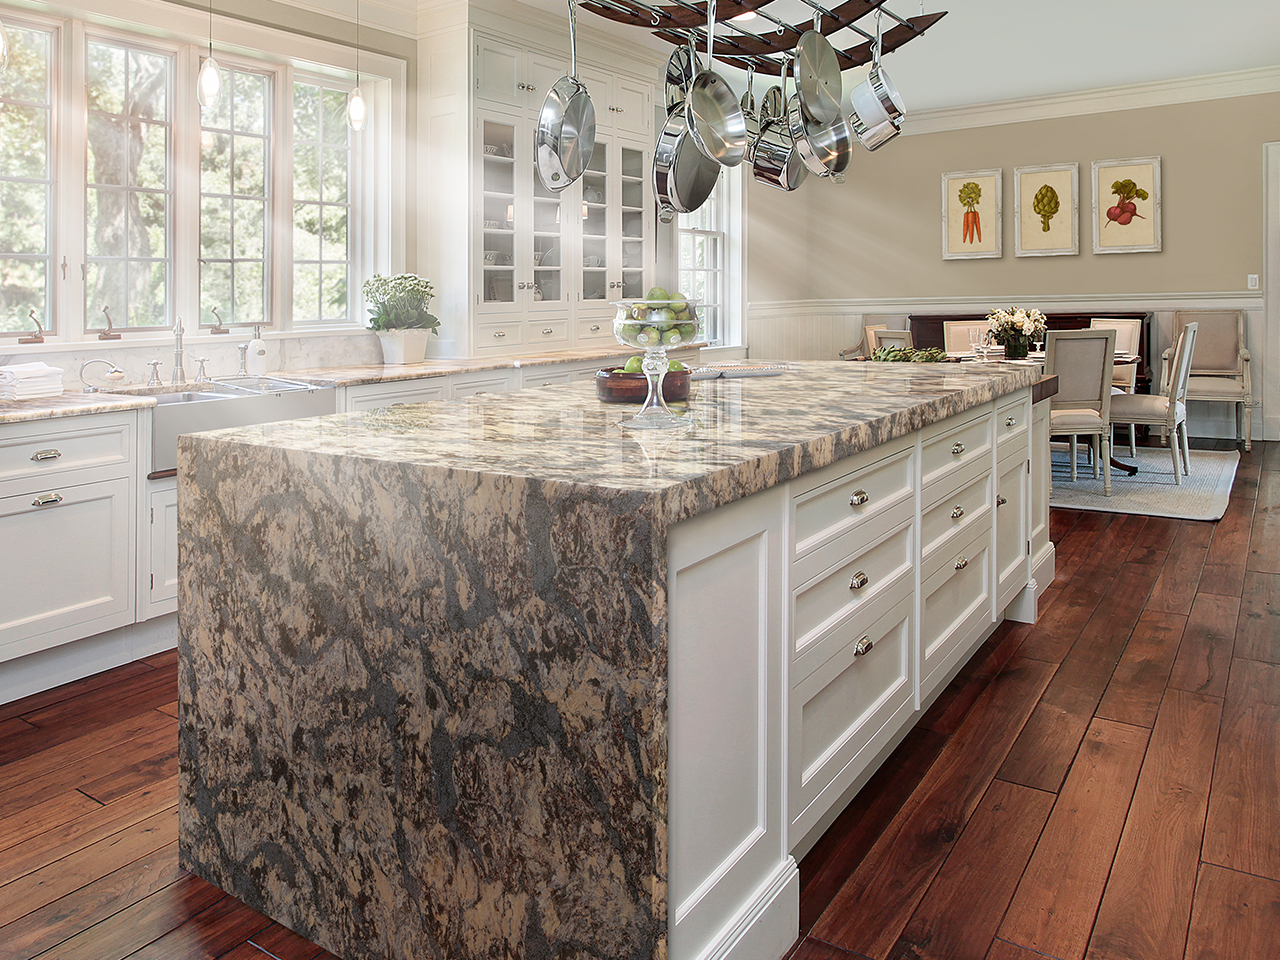 pros and cons of quartz countertops surfaceco. Black Bedroom Furniture Sets. Home Design Ideas